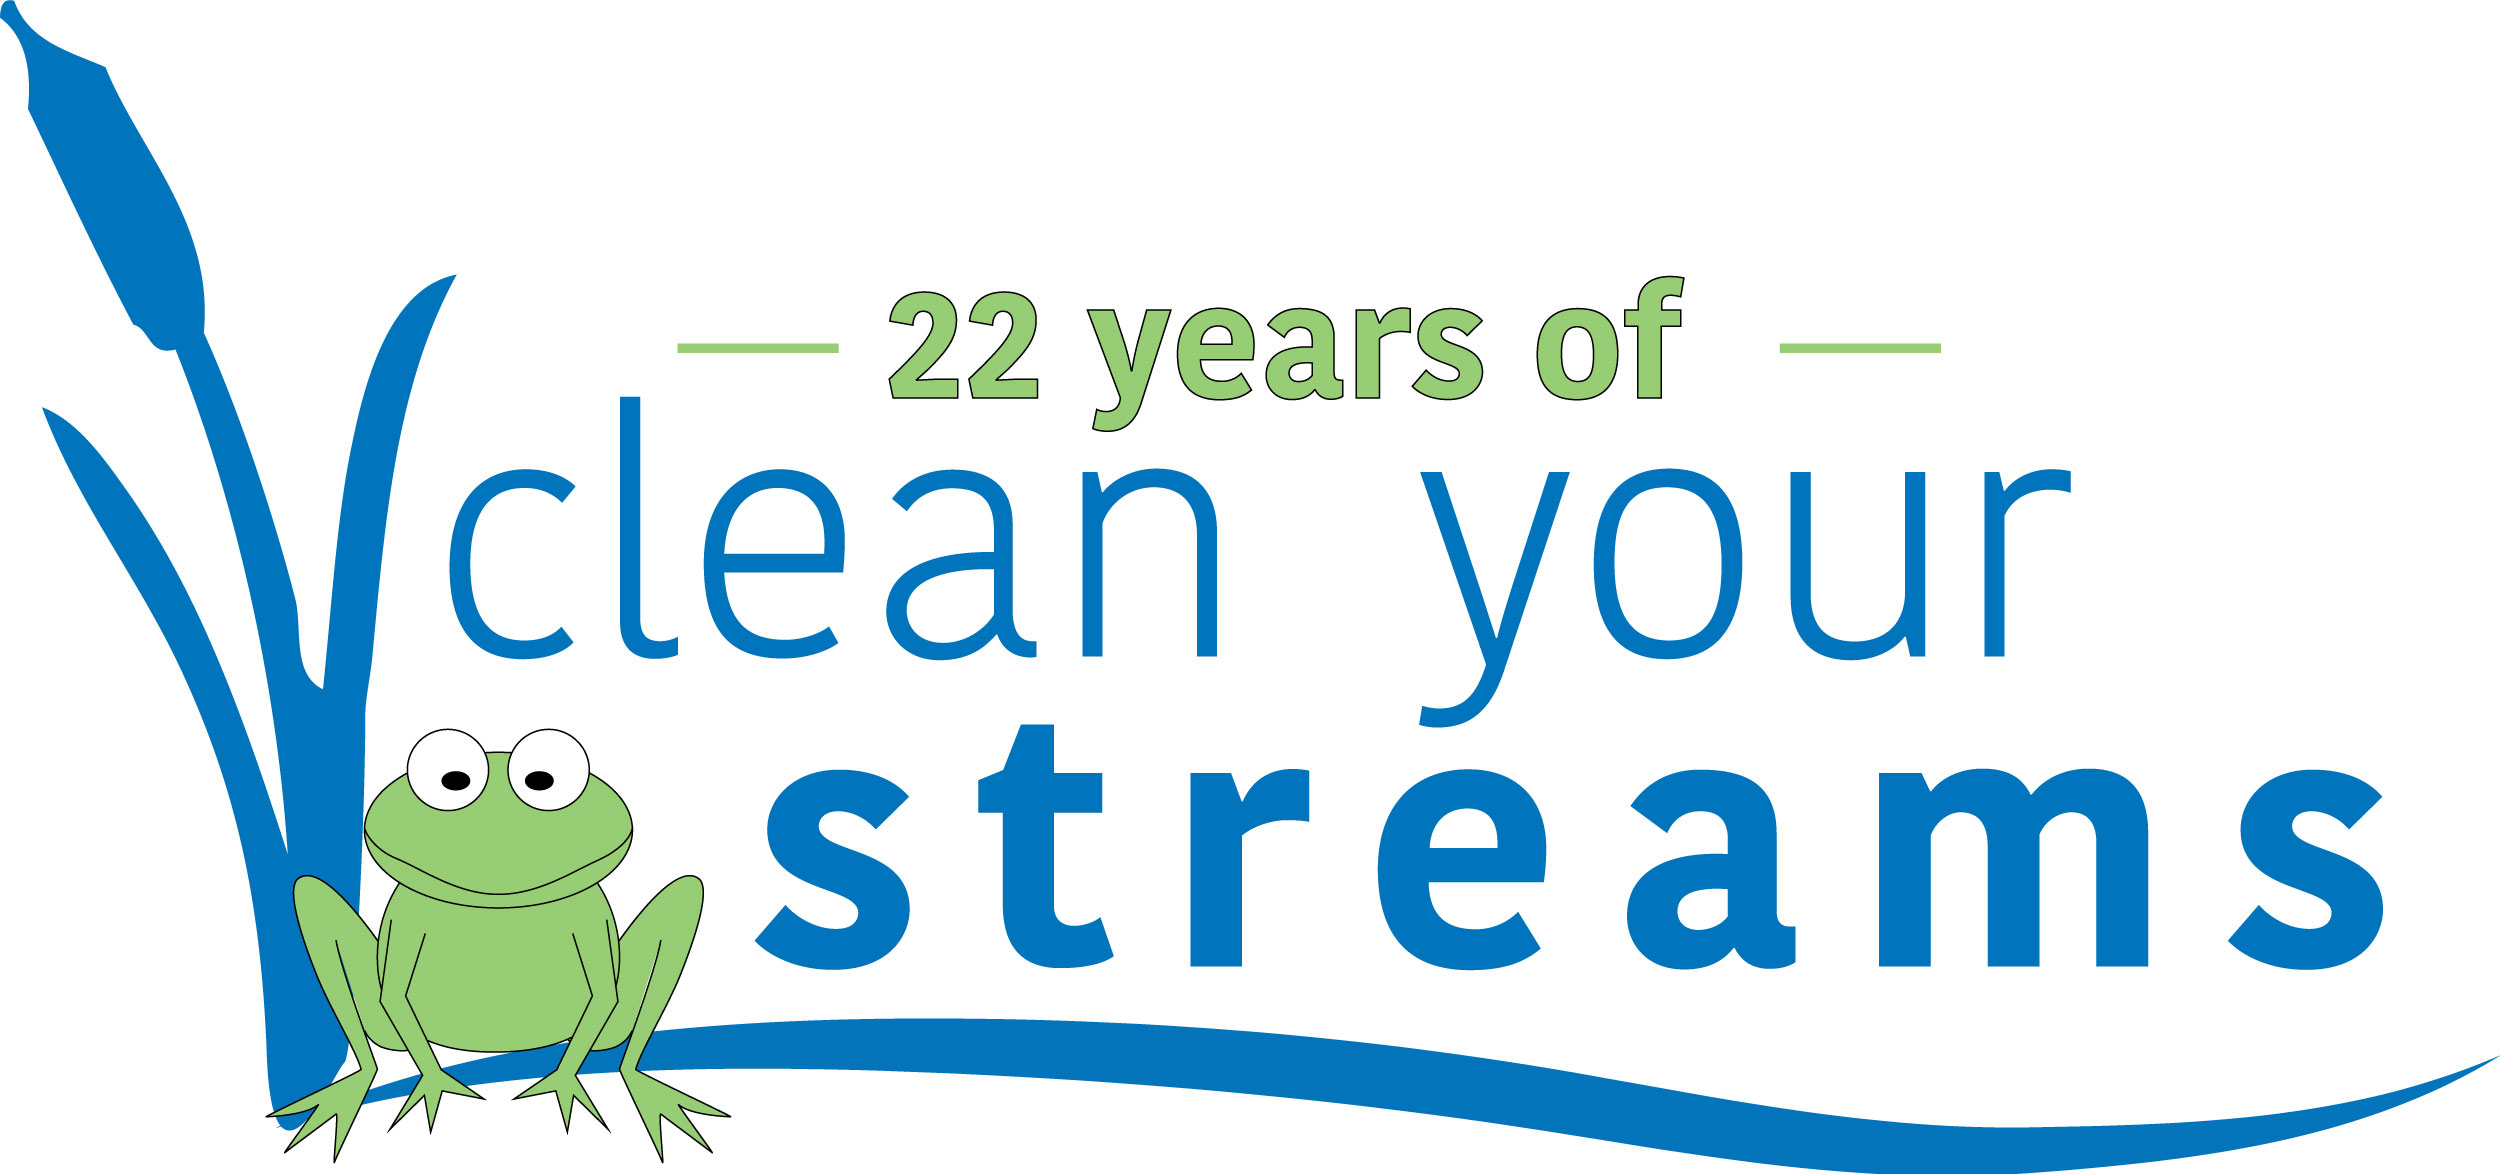 Celebrating 22 Years of Clean Streams!<p>Over the past 22 CYS cleanups, 301,681 pounds of trash have been collected by 12,134 volunteers.</p>